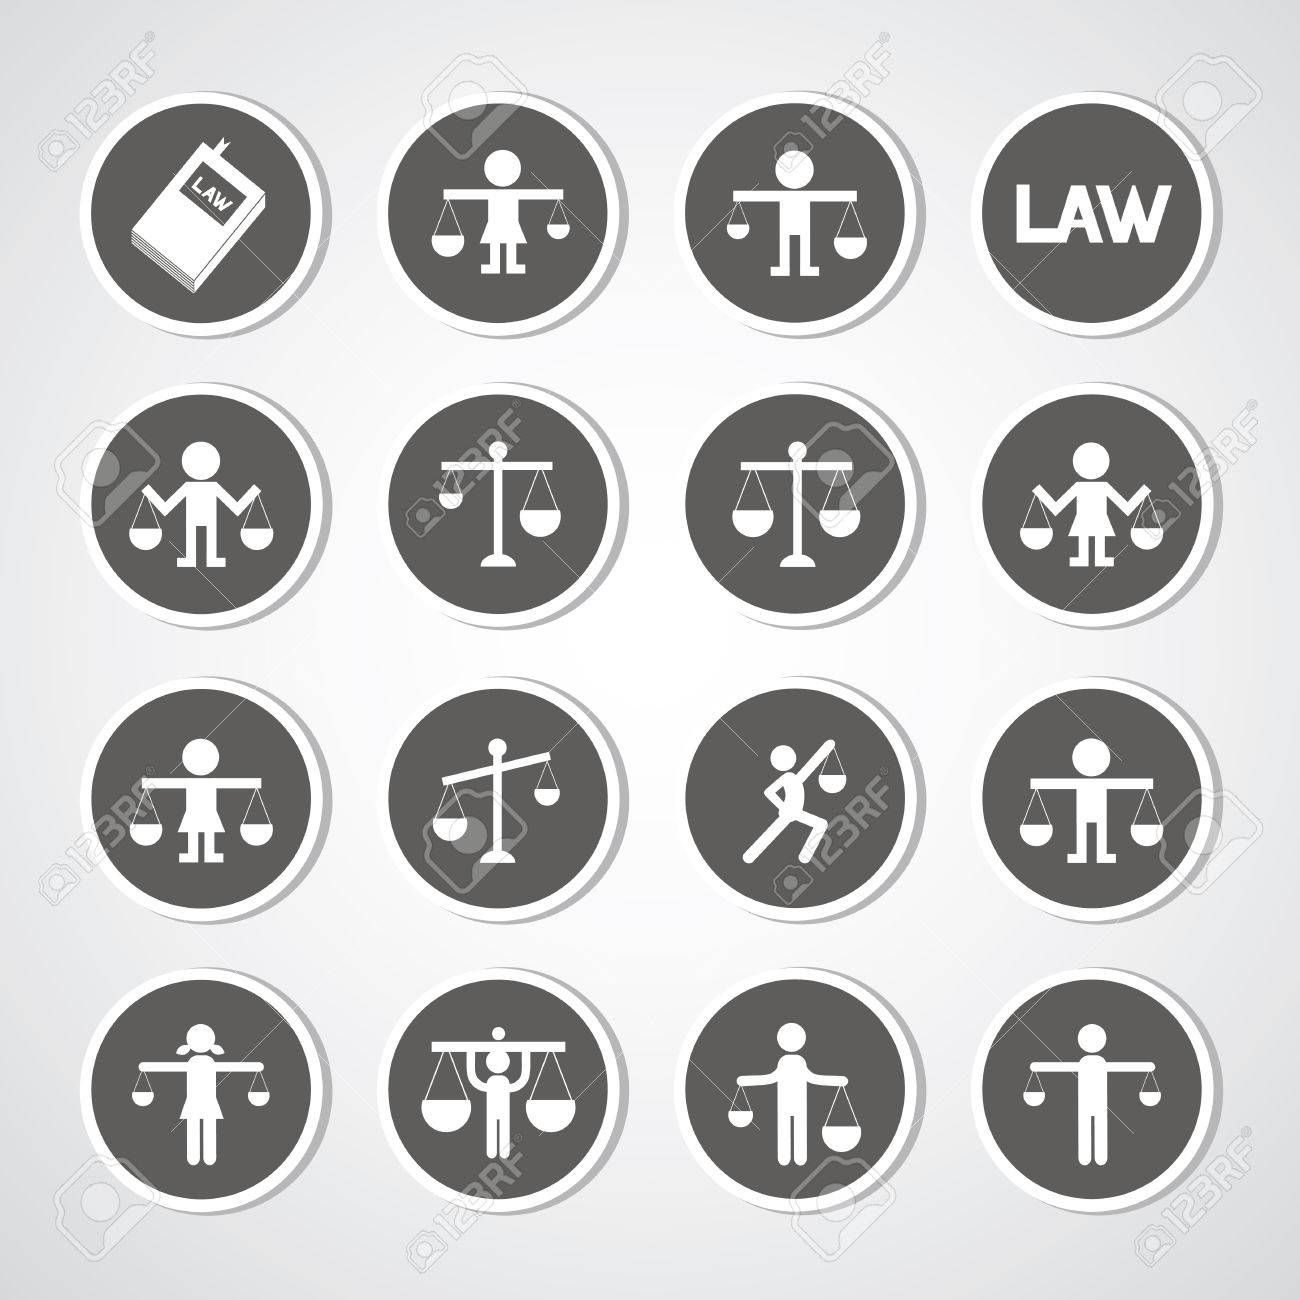 scales icon on gray background Stock Vector - 26184620